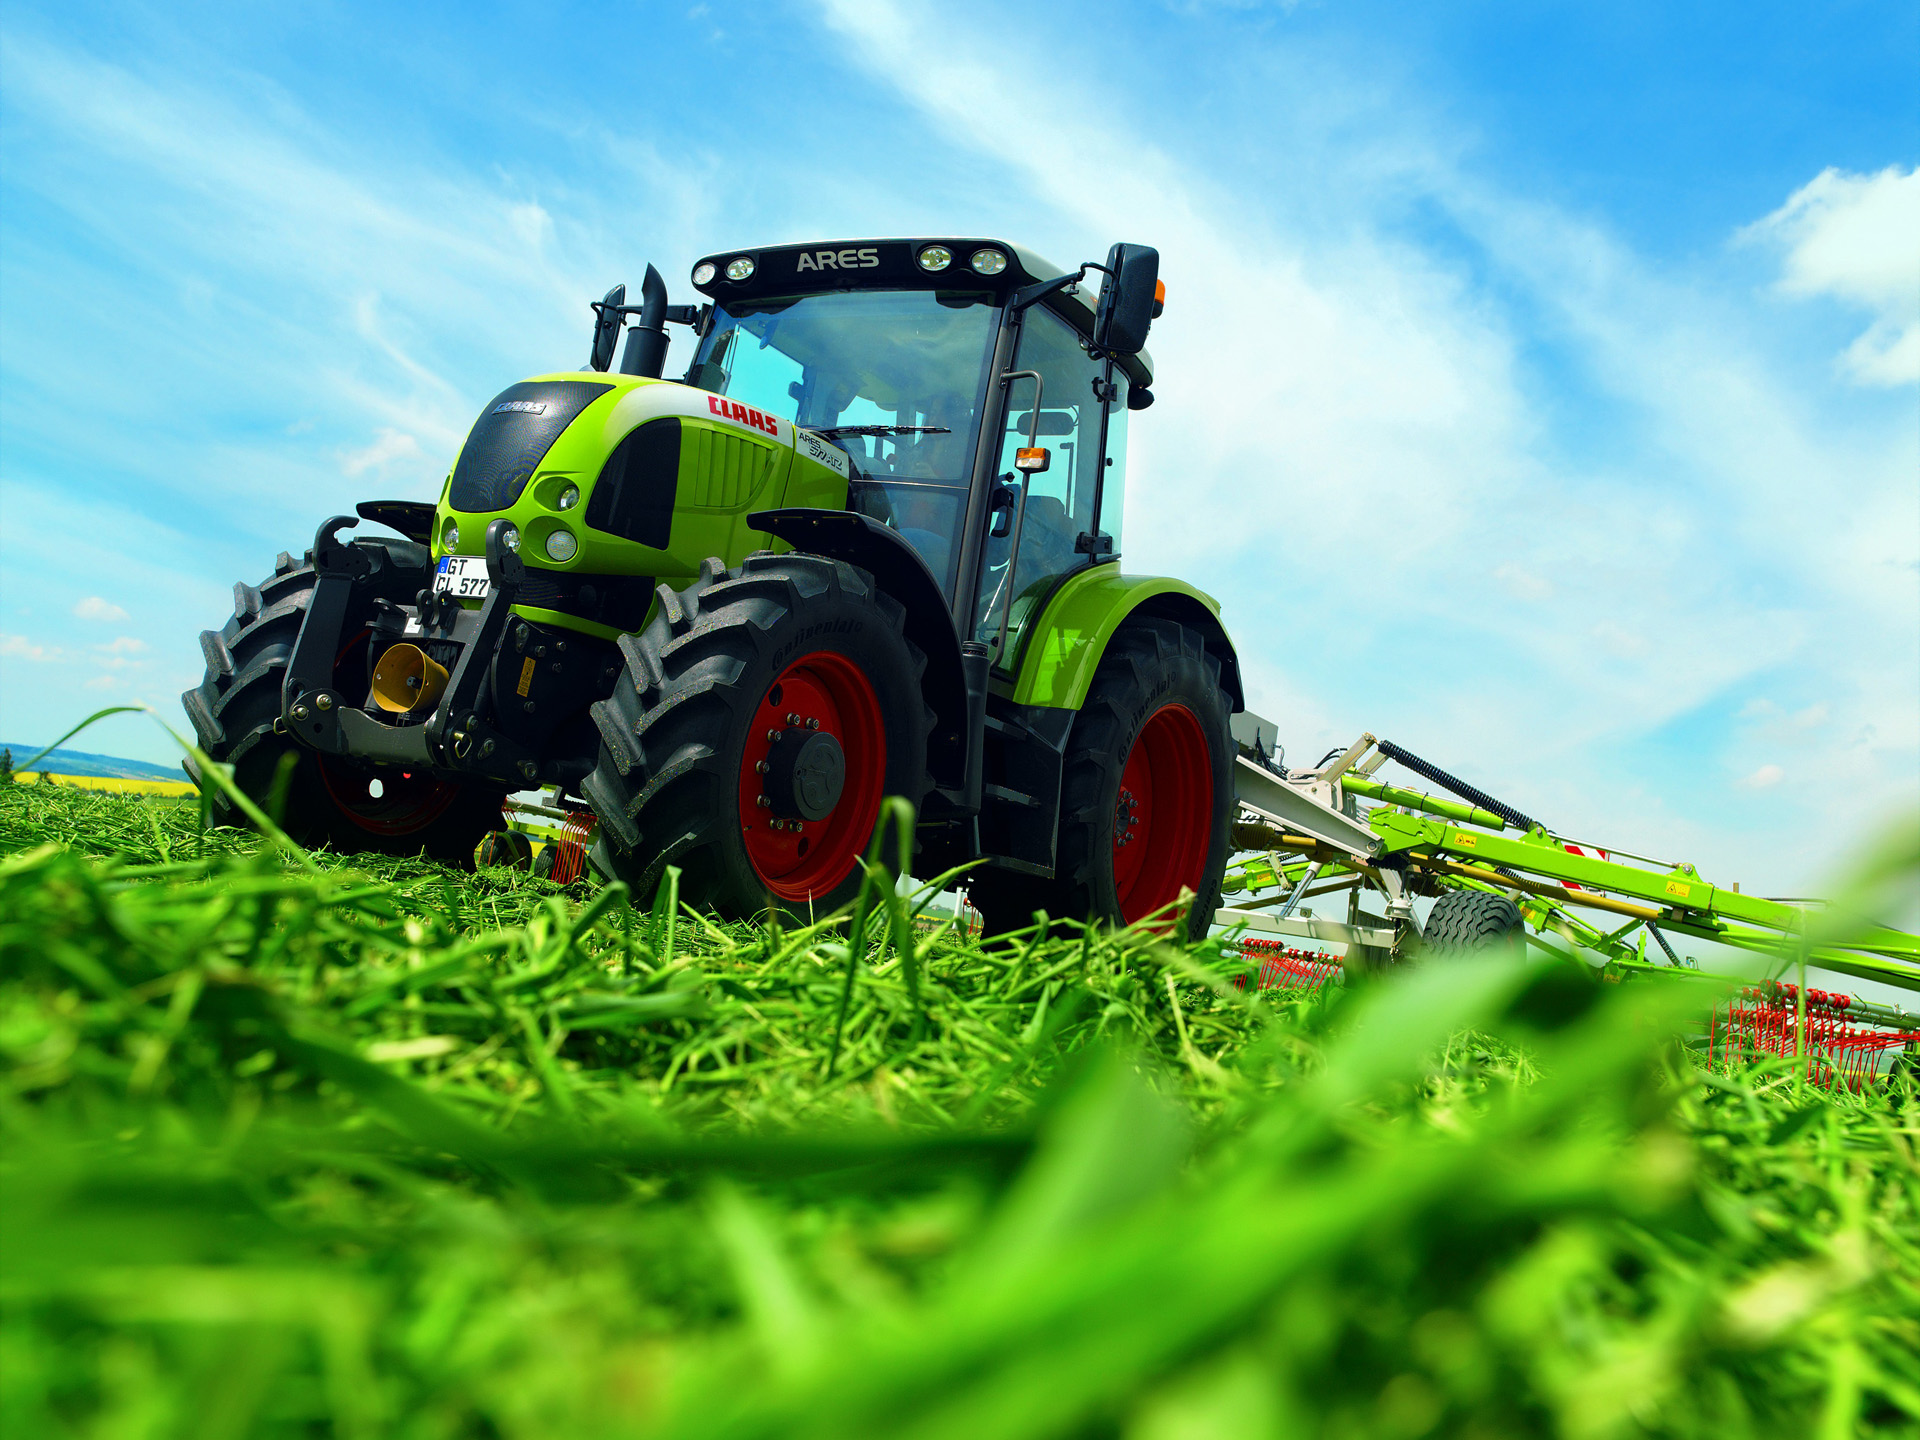 Claas Ares photos - PhotoGallery with 8 pics| CarsBase.com